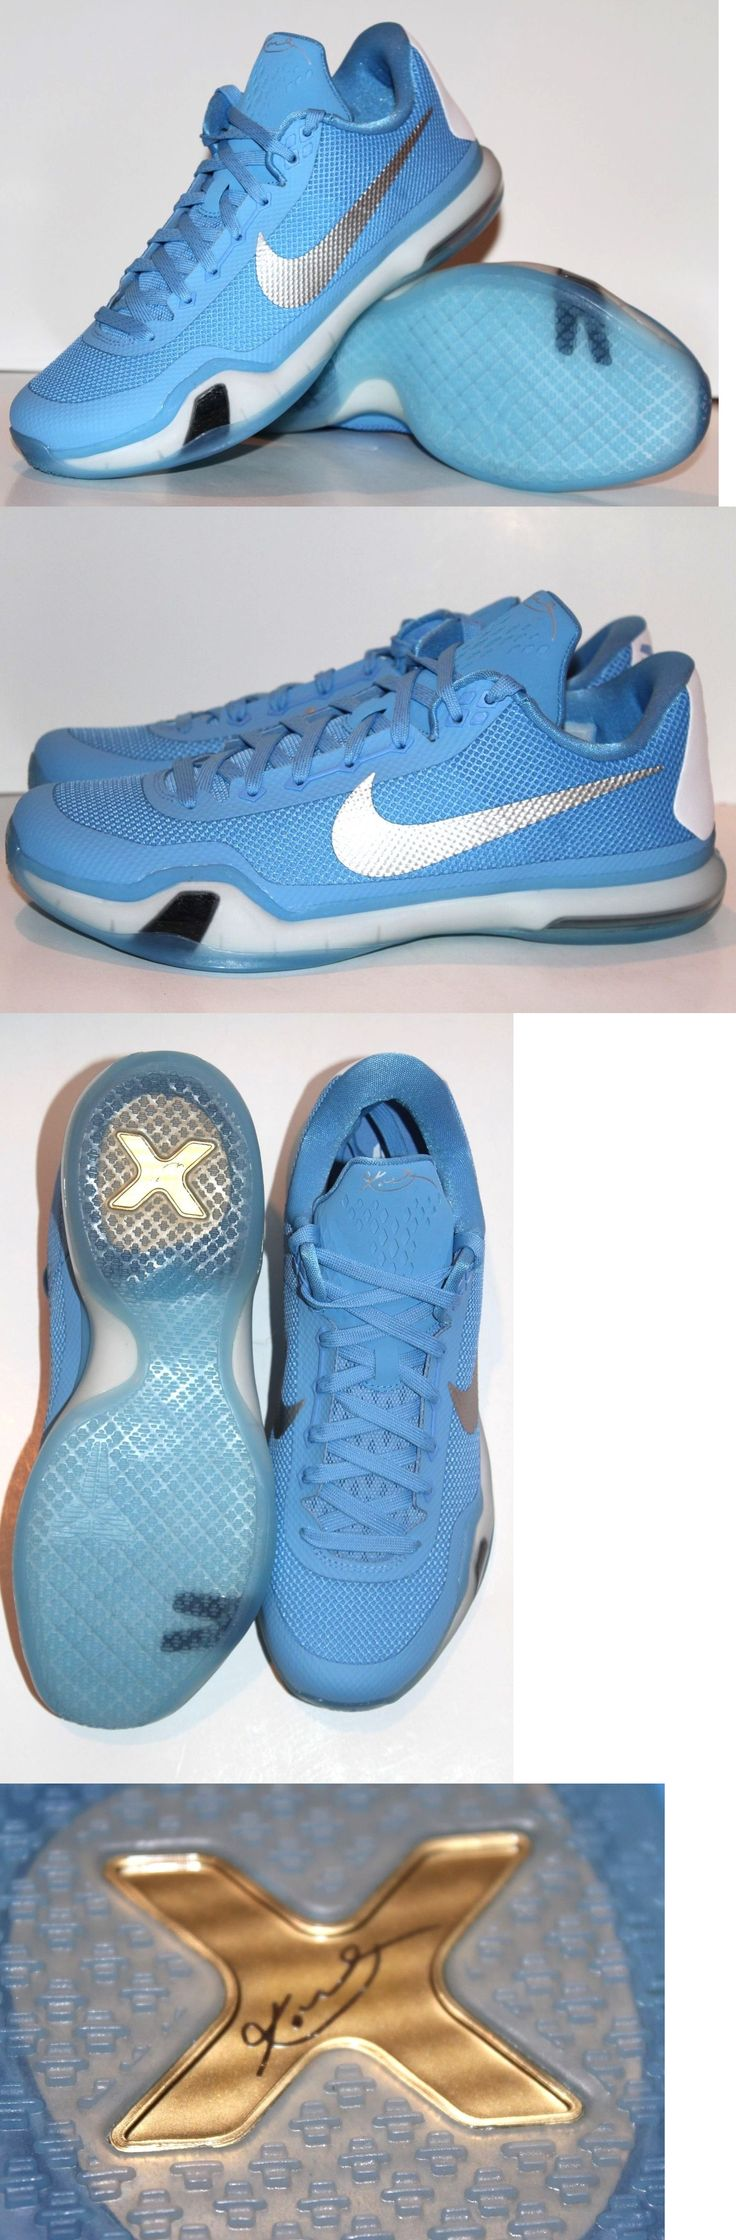 Men 158971: New Nike Kobe X Tb North Carolina Blue Basketball Shoes Mens 10.5 Unc 813030-410 -> BUY IT NOW ONLY: $119.95 on eBay!